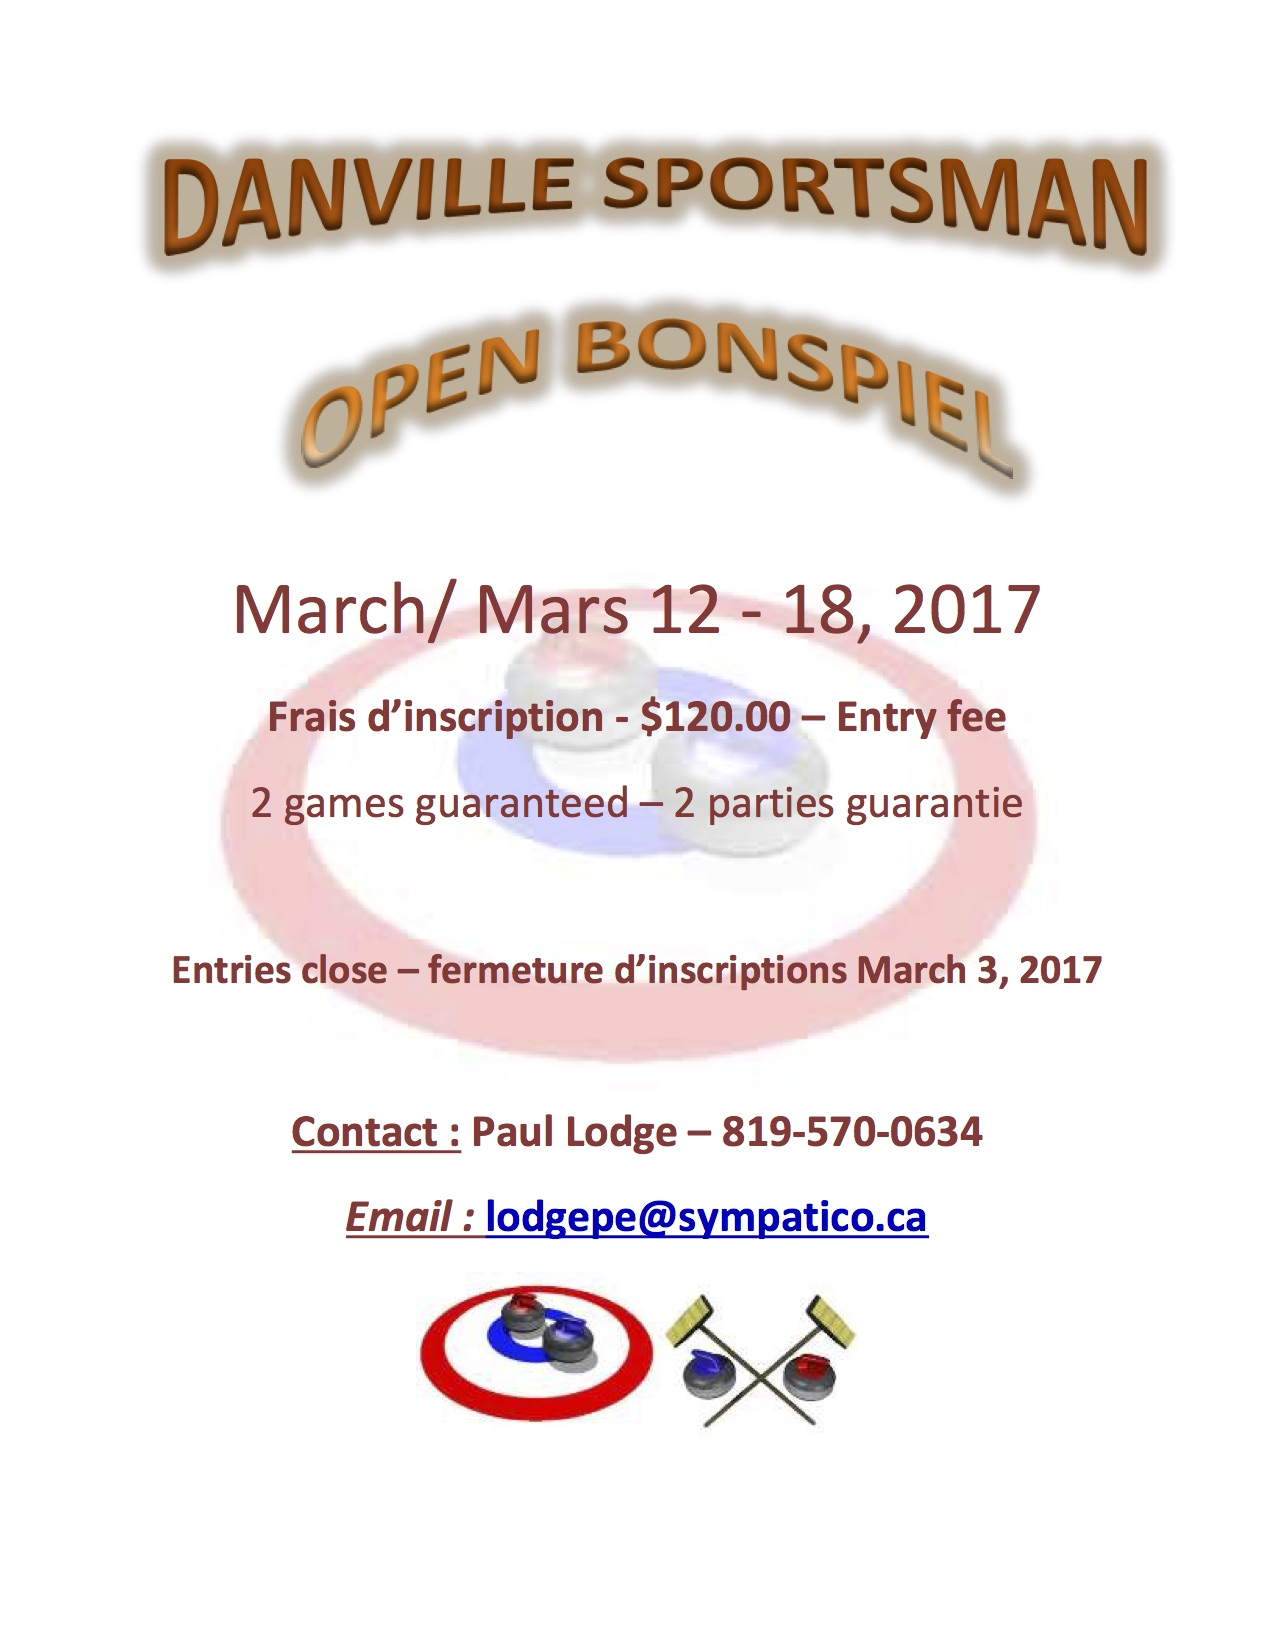 Club de curling Danville